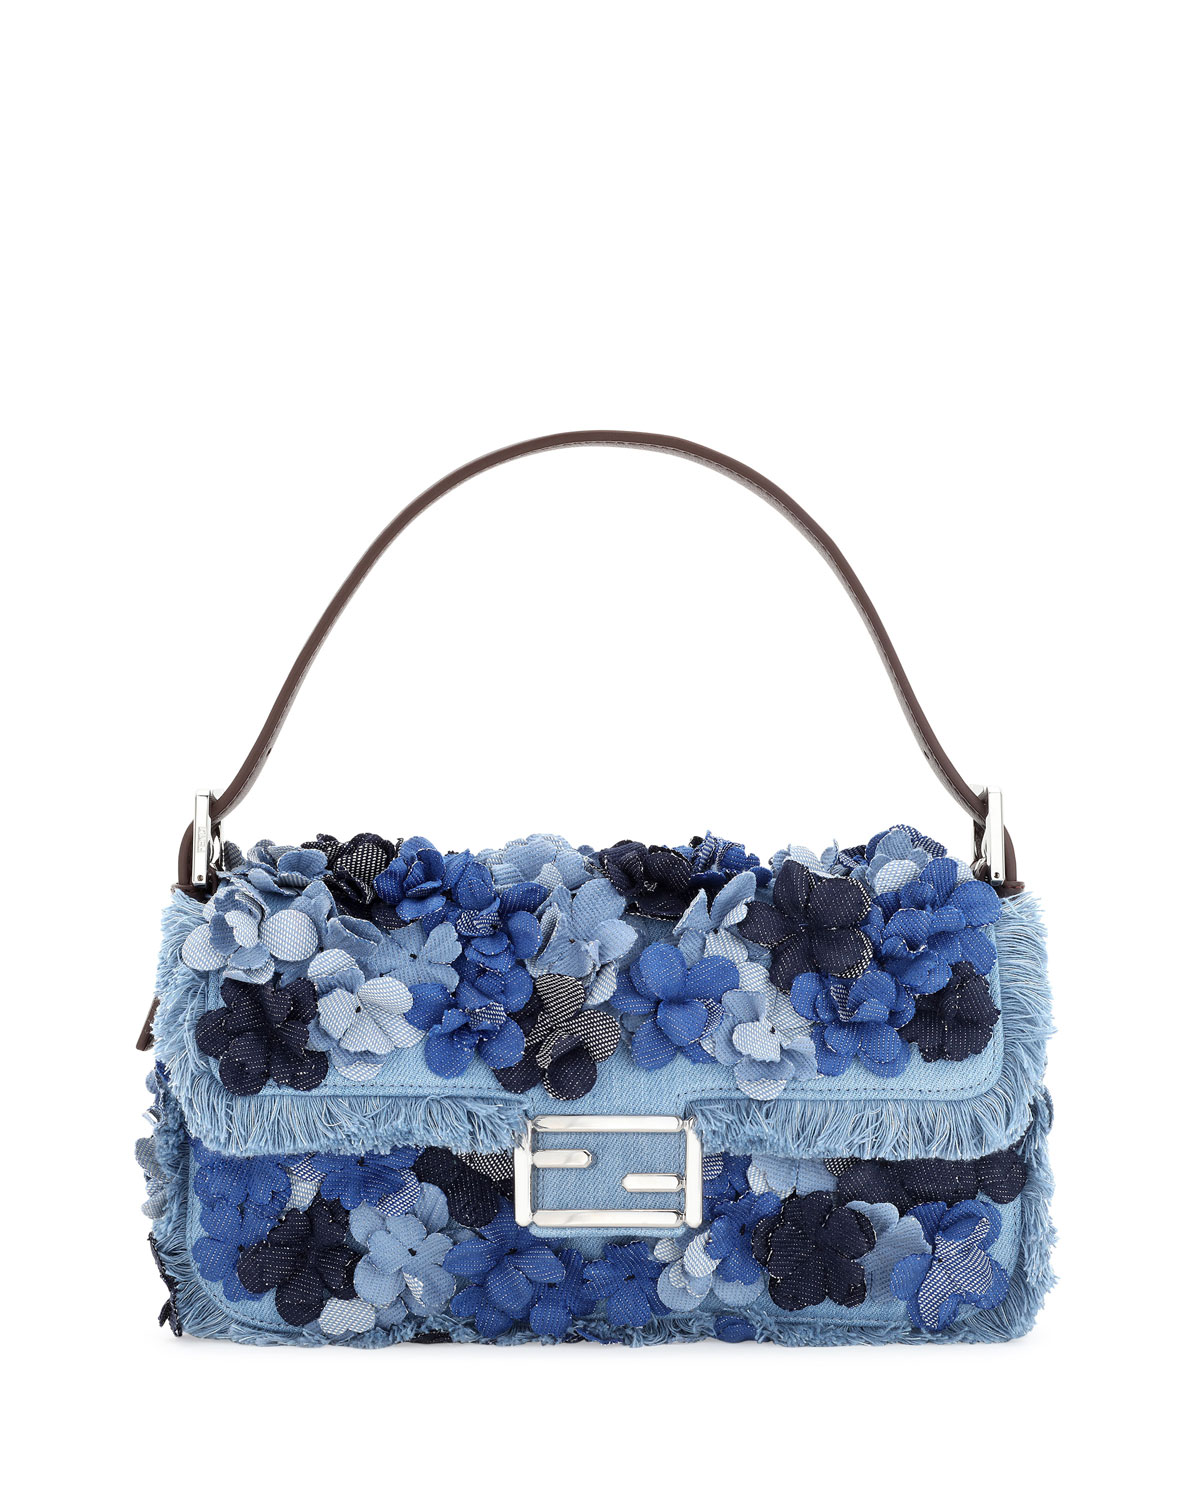 Wedding Gift Stores Nyc: Fendi Baguette Denim Flowers Shoulder Bag, Denim